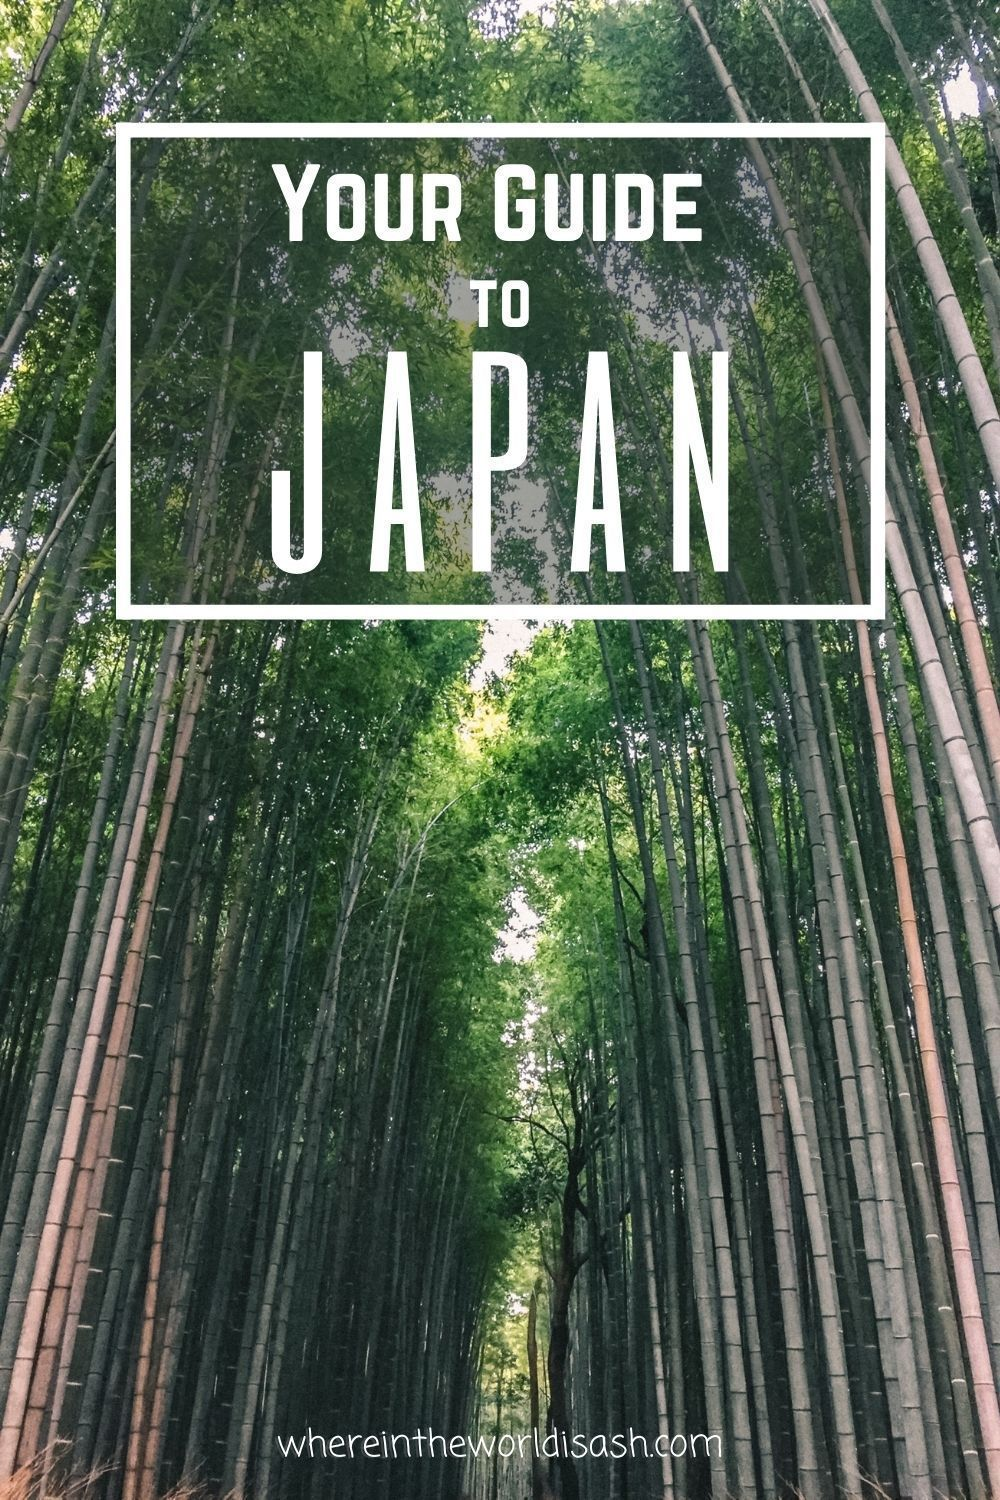 adf06d1383d6c2fc230089396d55b3a9 - How Long Will It Take To Get To Japan